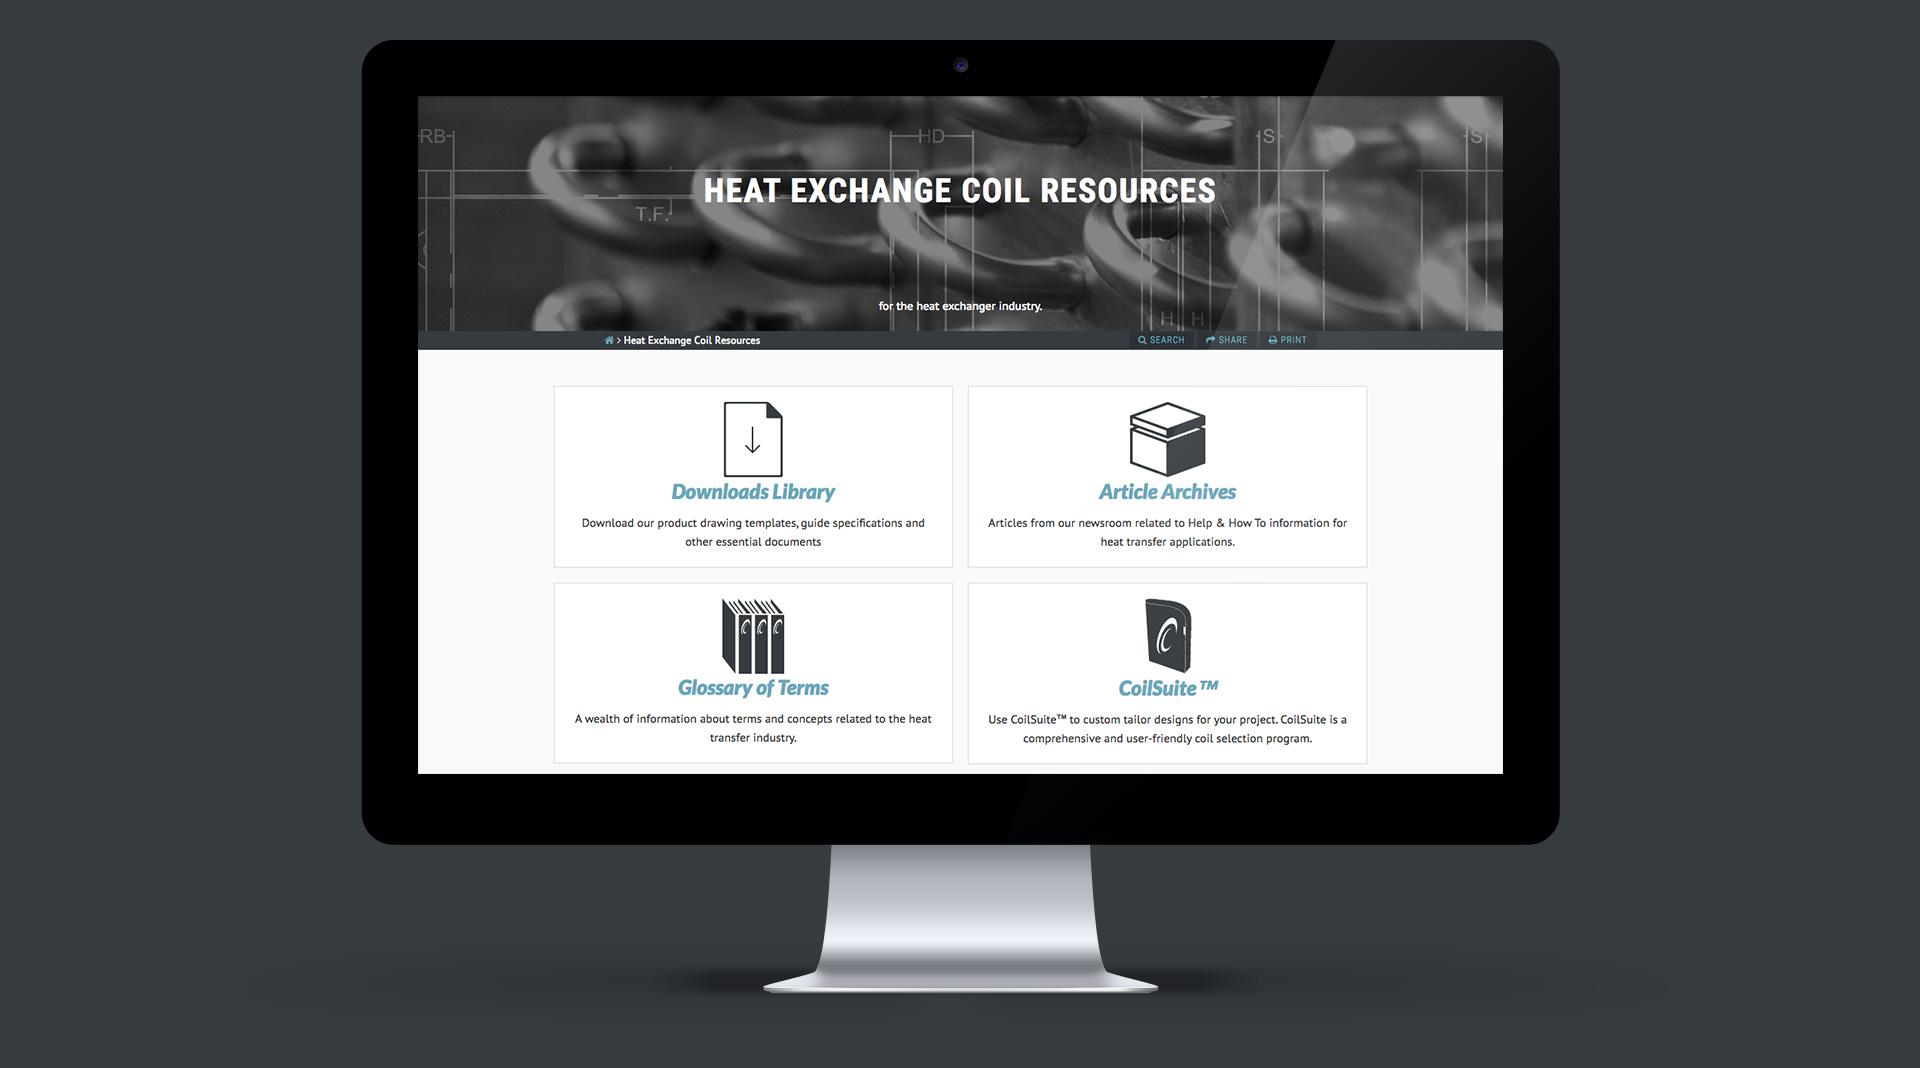 Resources Page of CoilmasterCorp.com